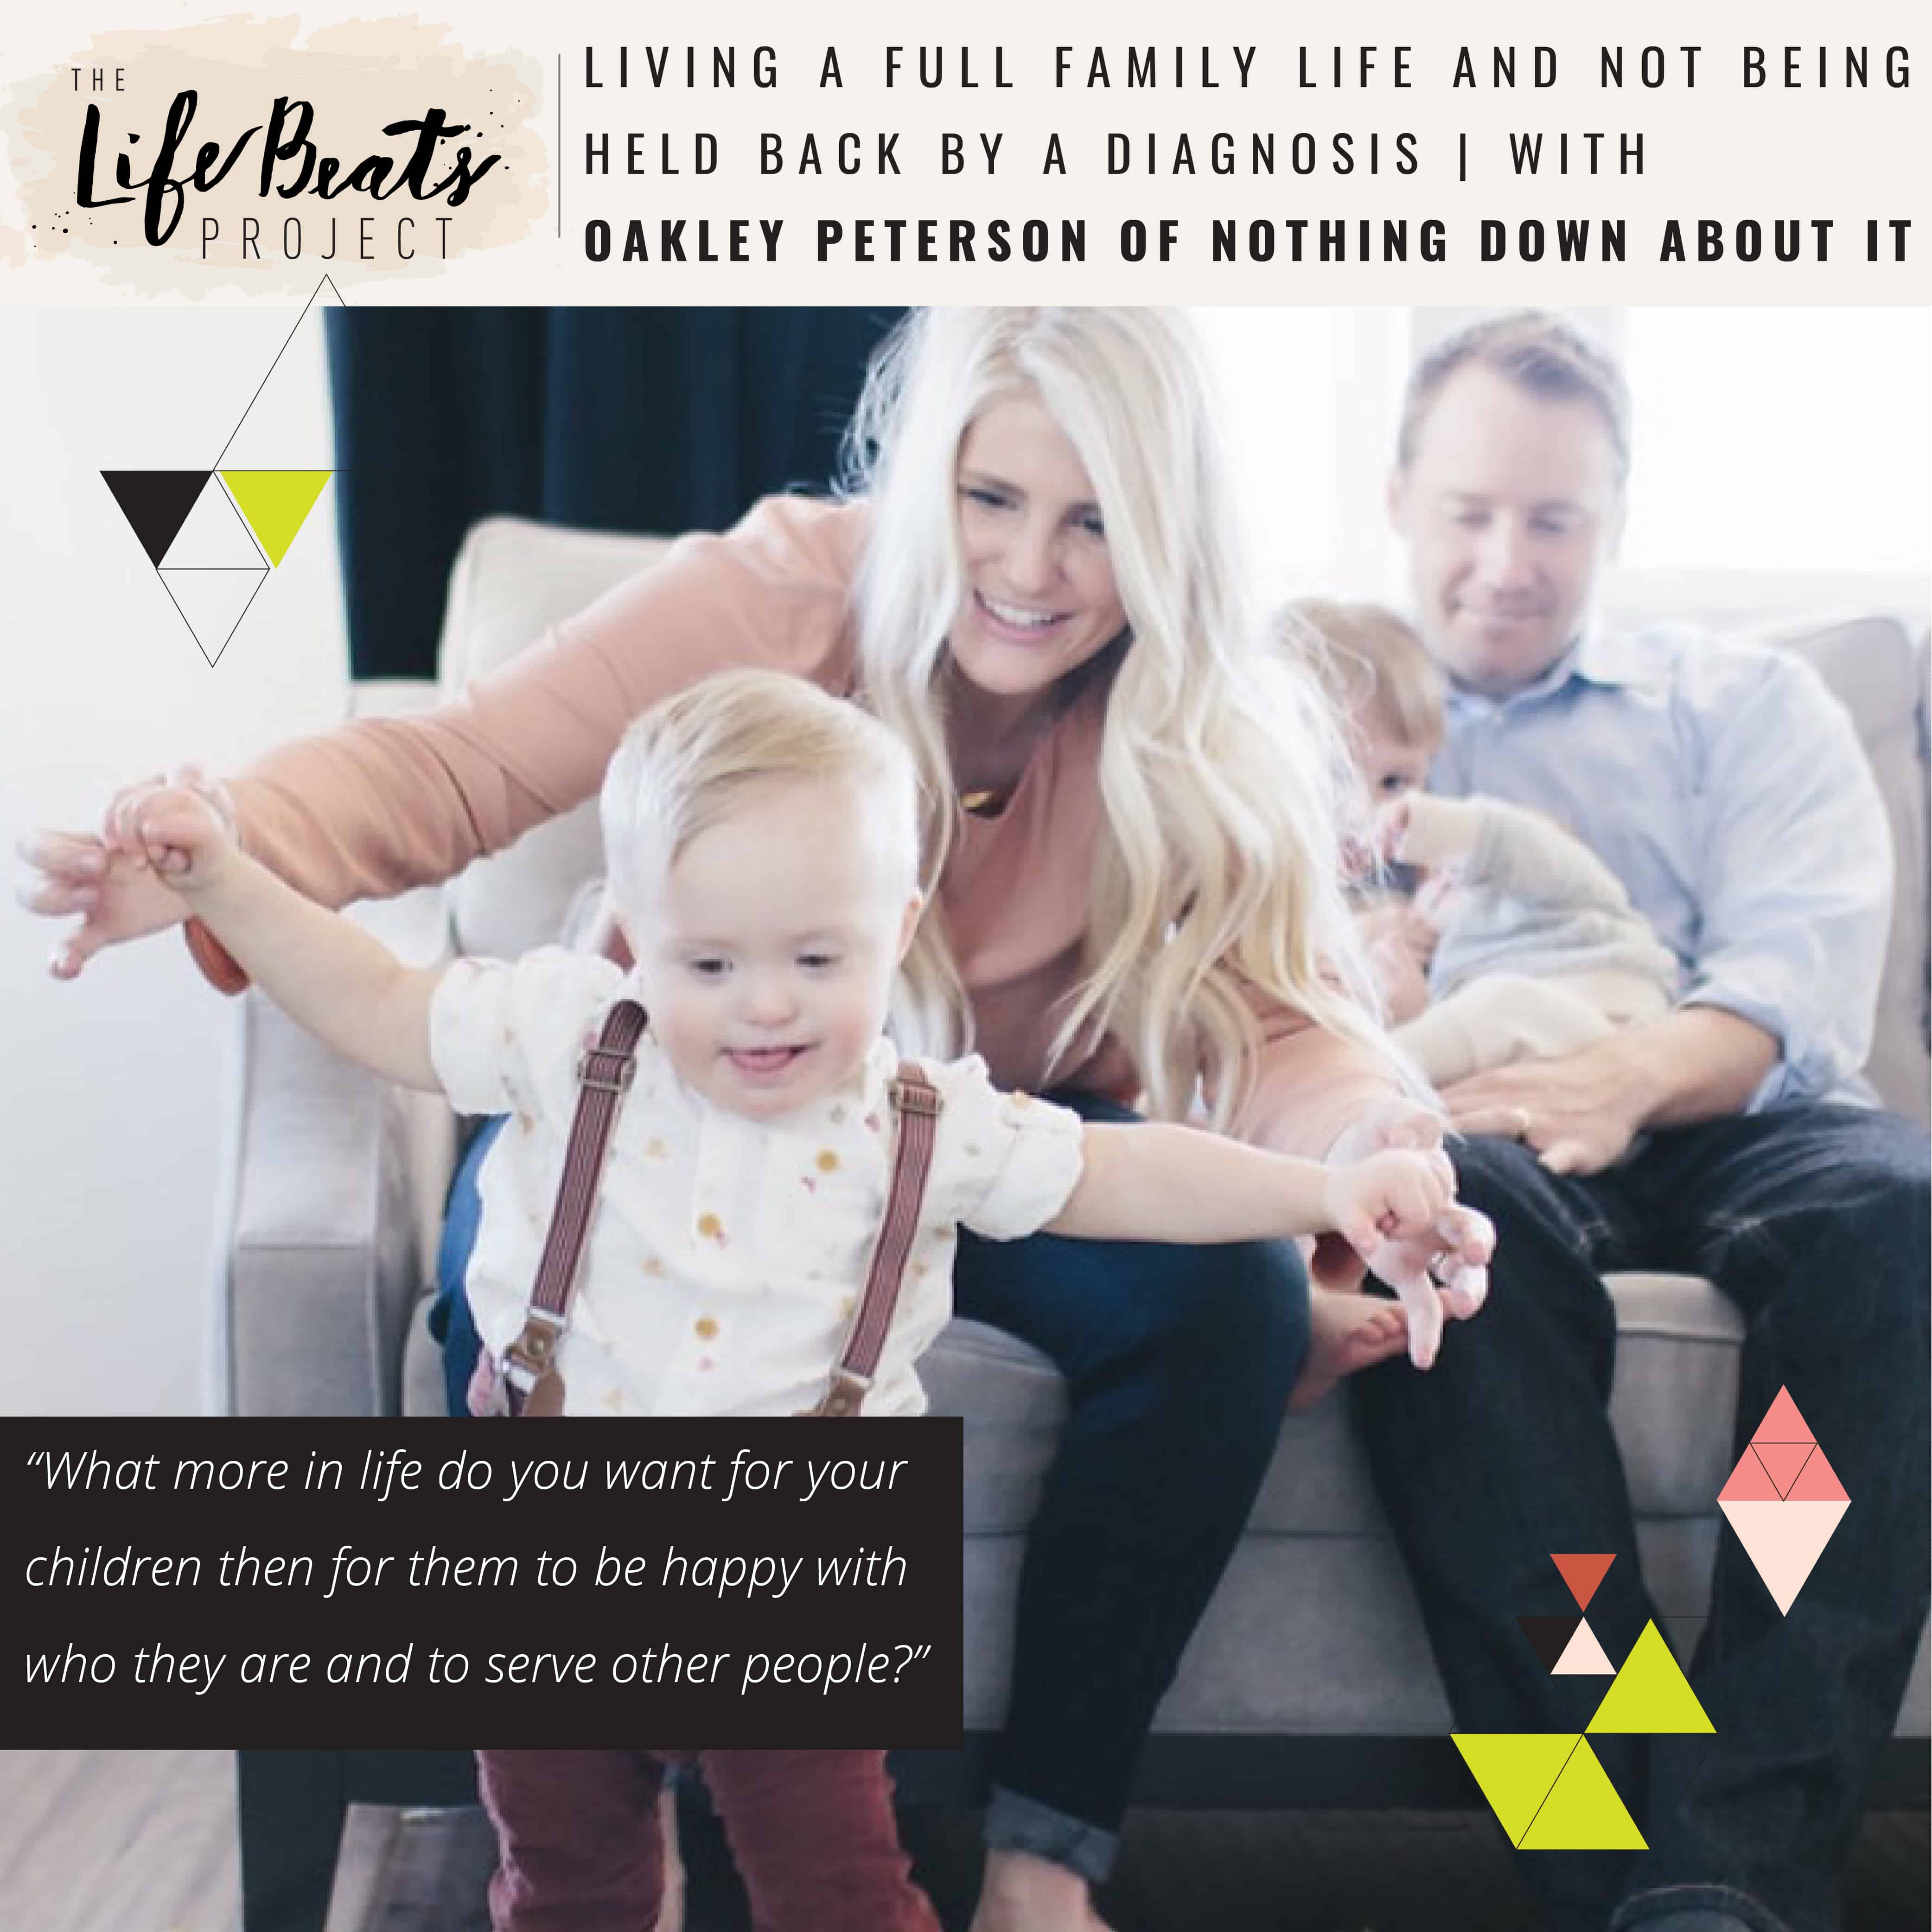 Down Syndrome special needs parenting Nothing Down About it Oakley Peterson Welles acceptance LifeBeats Project podcast